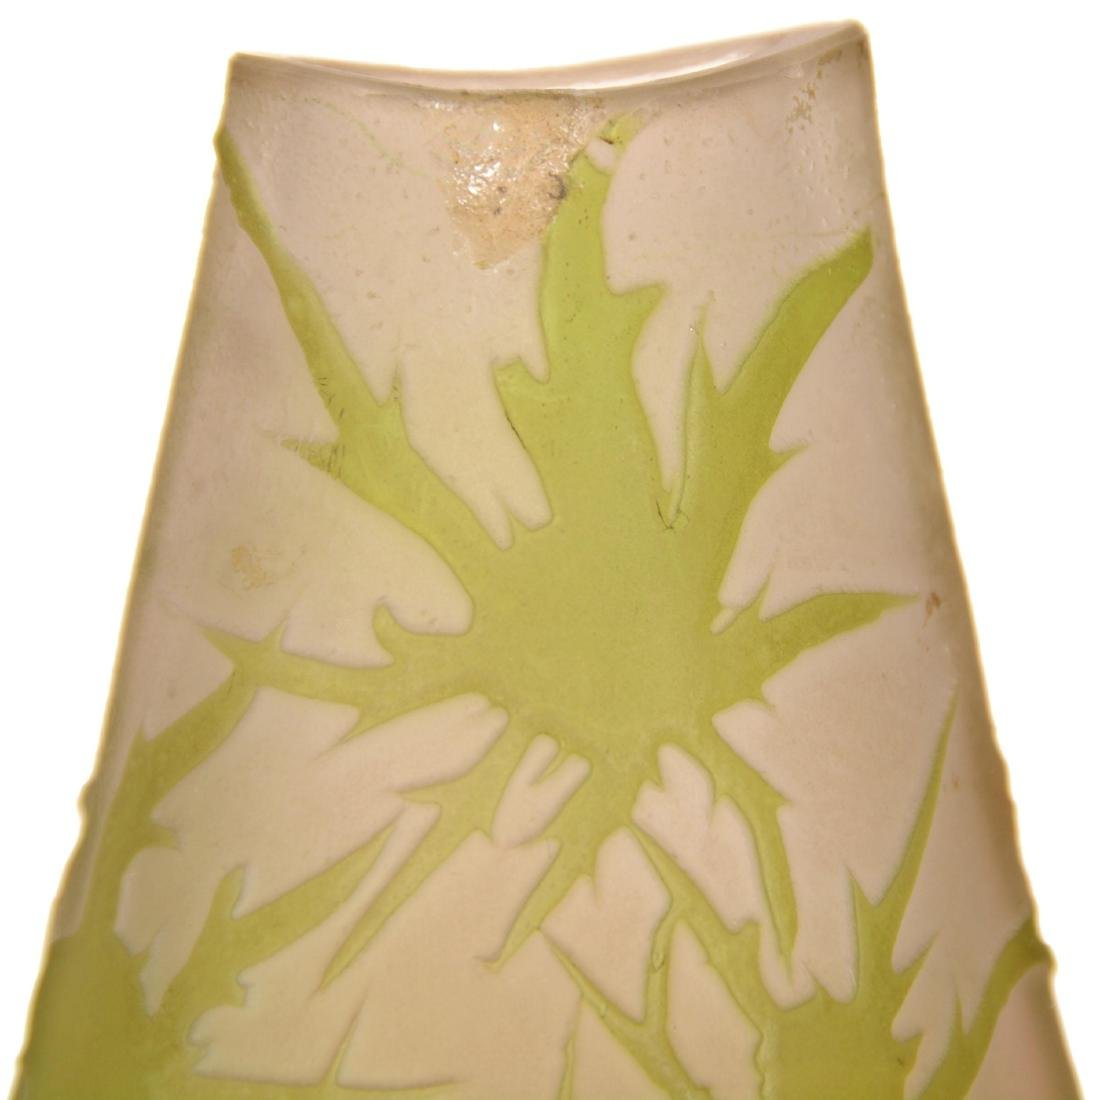 French Cameo Art Glass Vase - 3